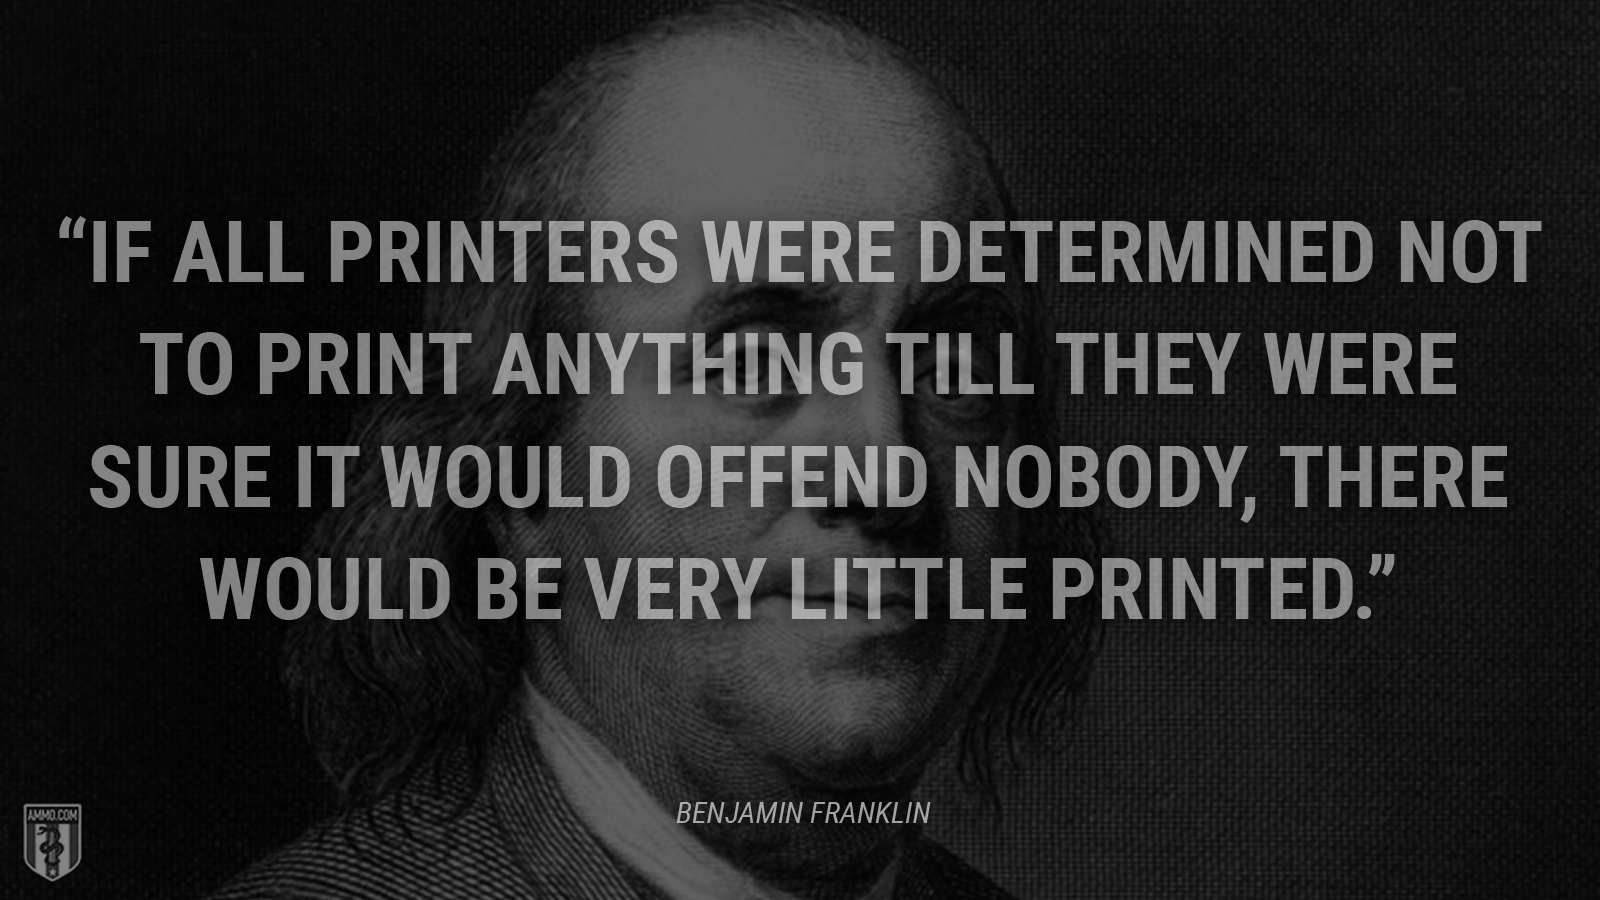 """If all printers were determined not to print anything till they were sure it would offend nobody, there would be very little printed."" - Benjamin Franklin"